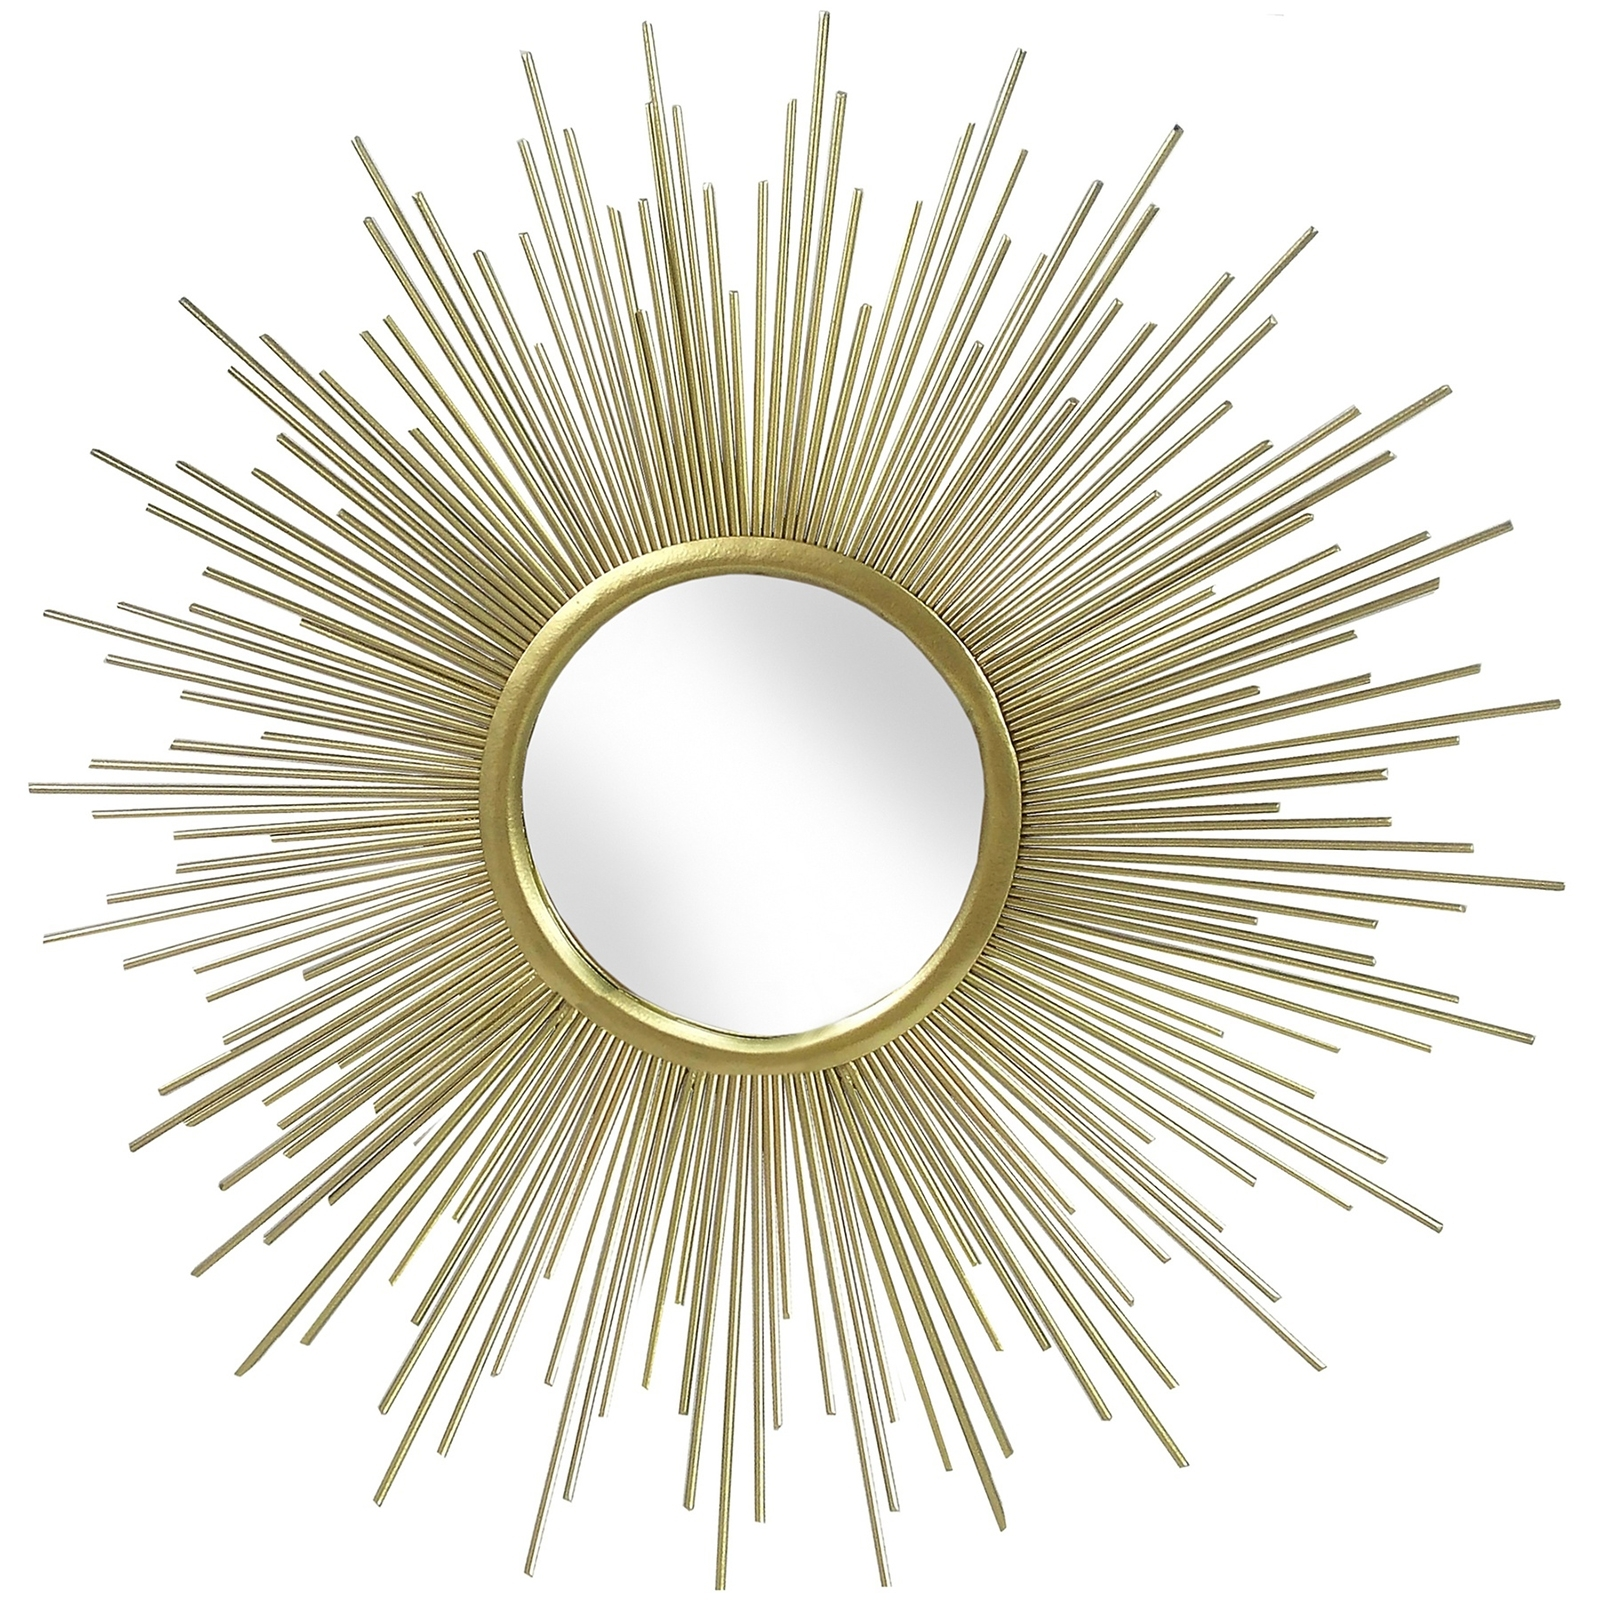 Rising Sun Gold Metal Wall Art Mirror – Casanad Pertaining To Best And Newest Gold Metal Wall Art (View 11 of 15)